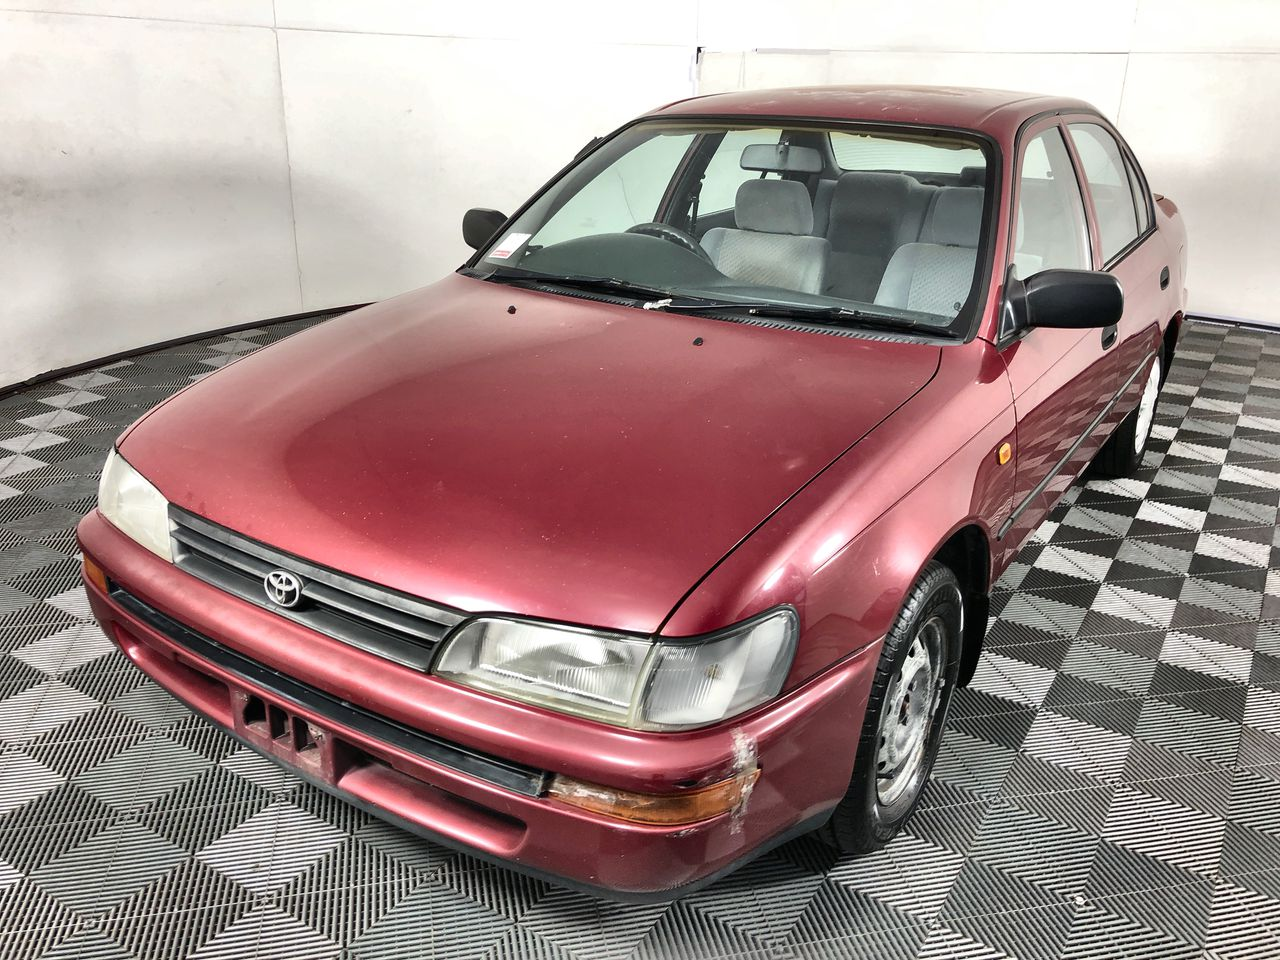 1995 Toyota Corolla CSi AE101 Manual Sedan